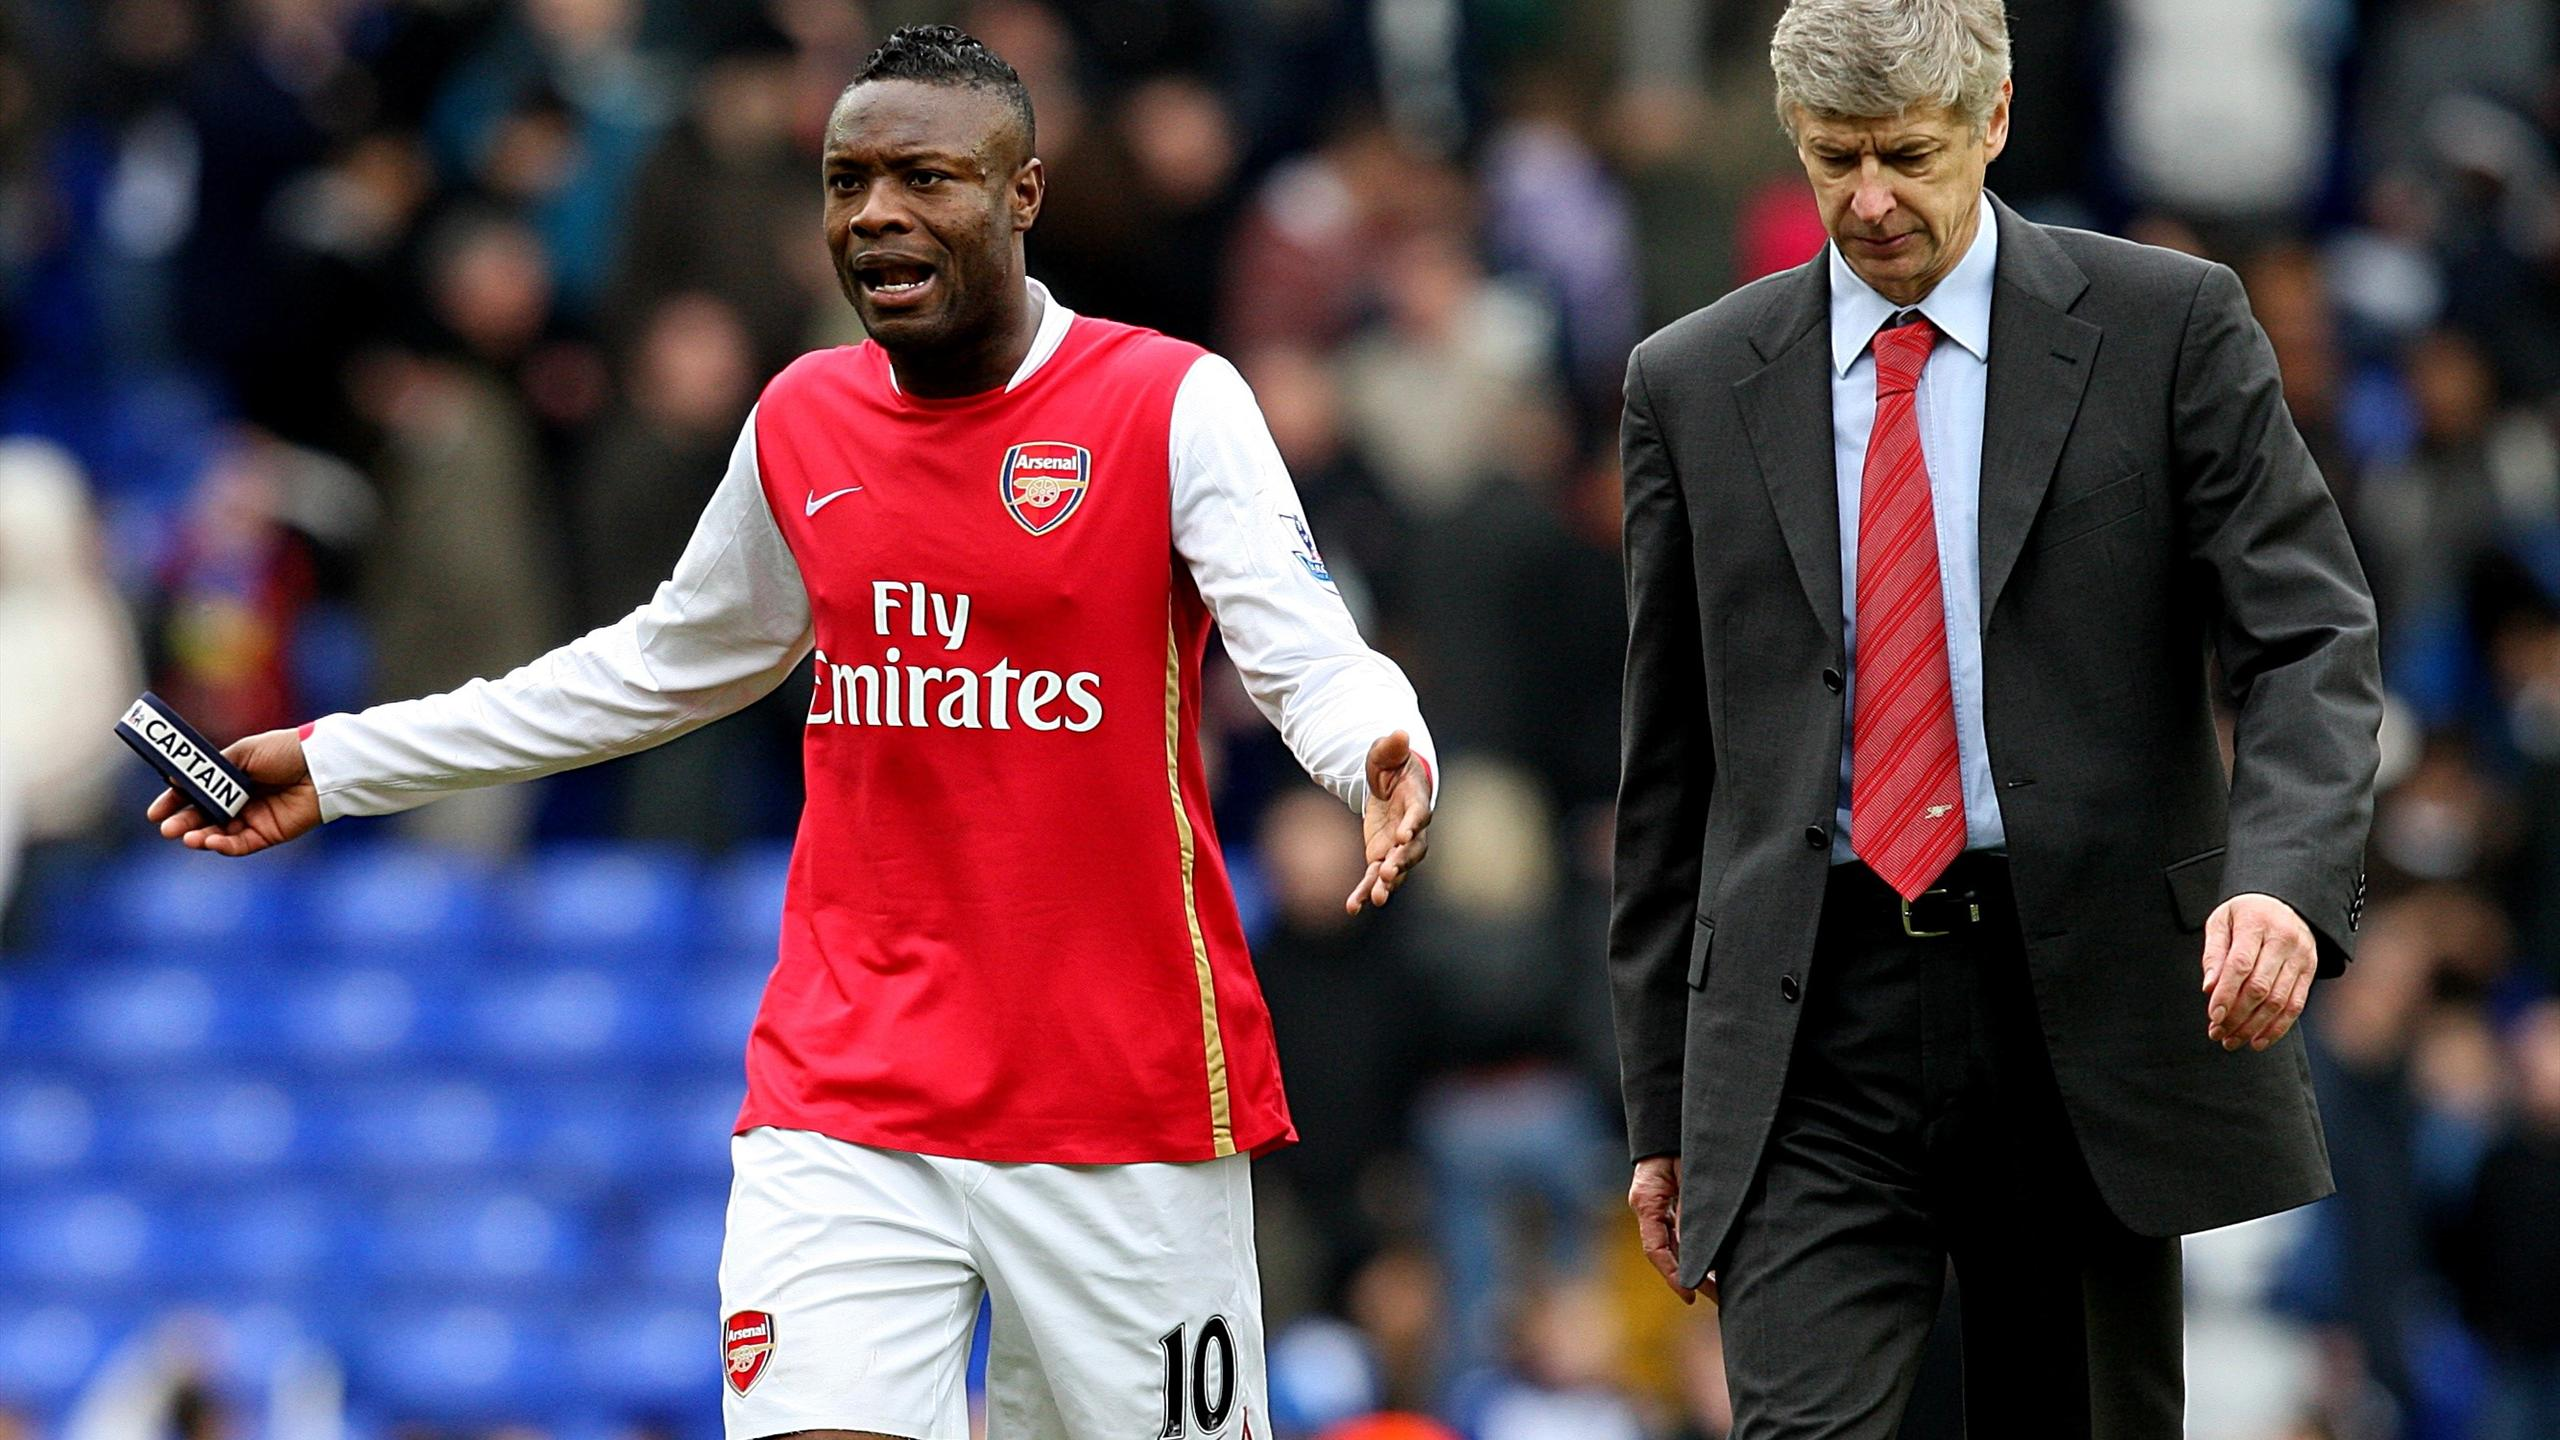 Arsenal manager Arsene Wenger and William Gallas walk off dejected